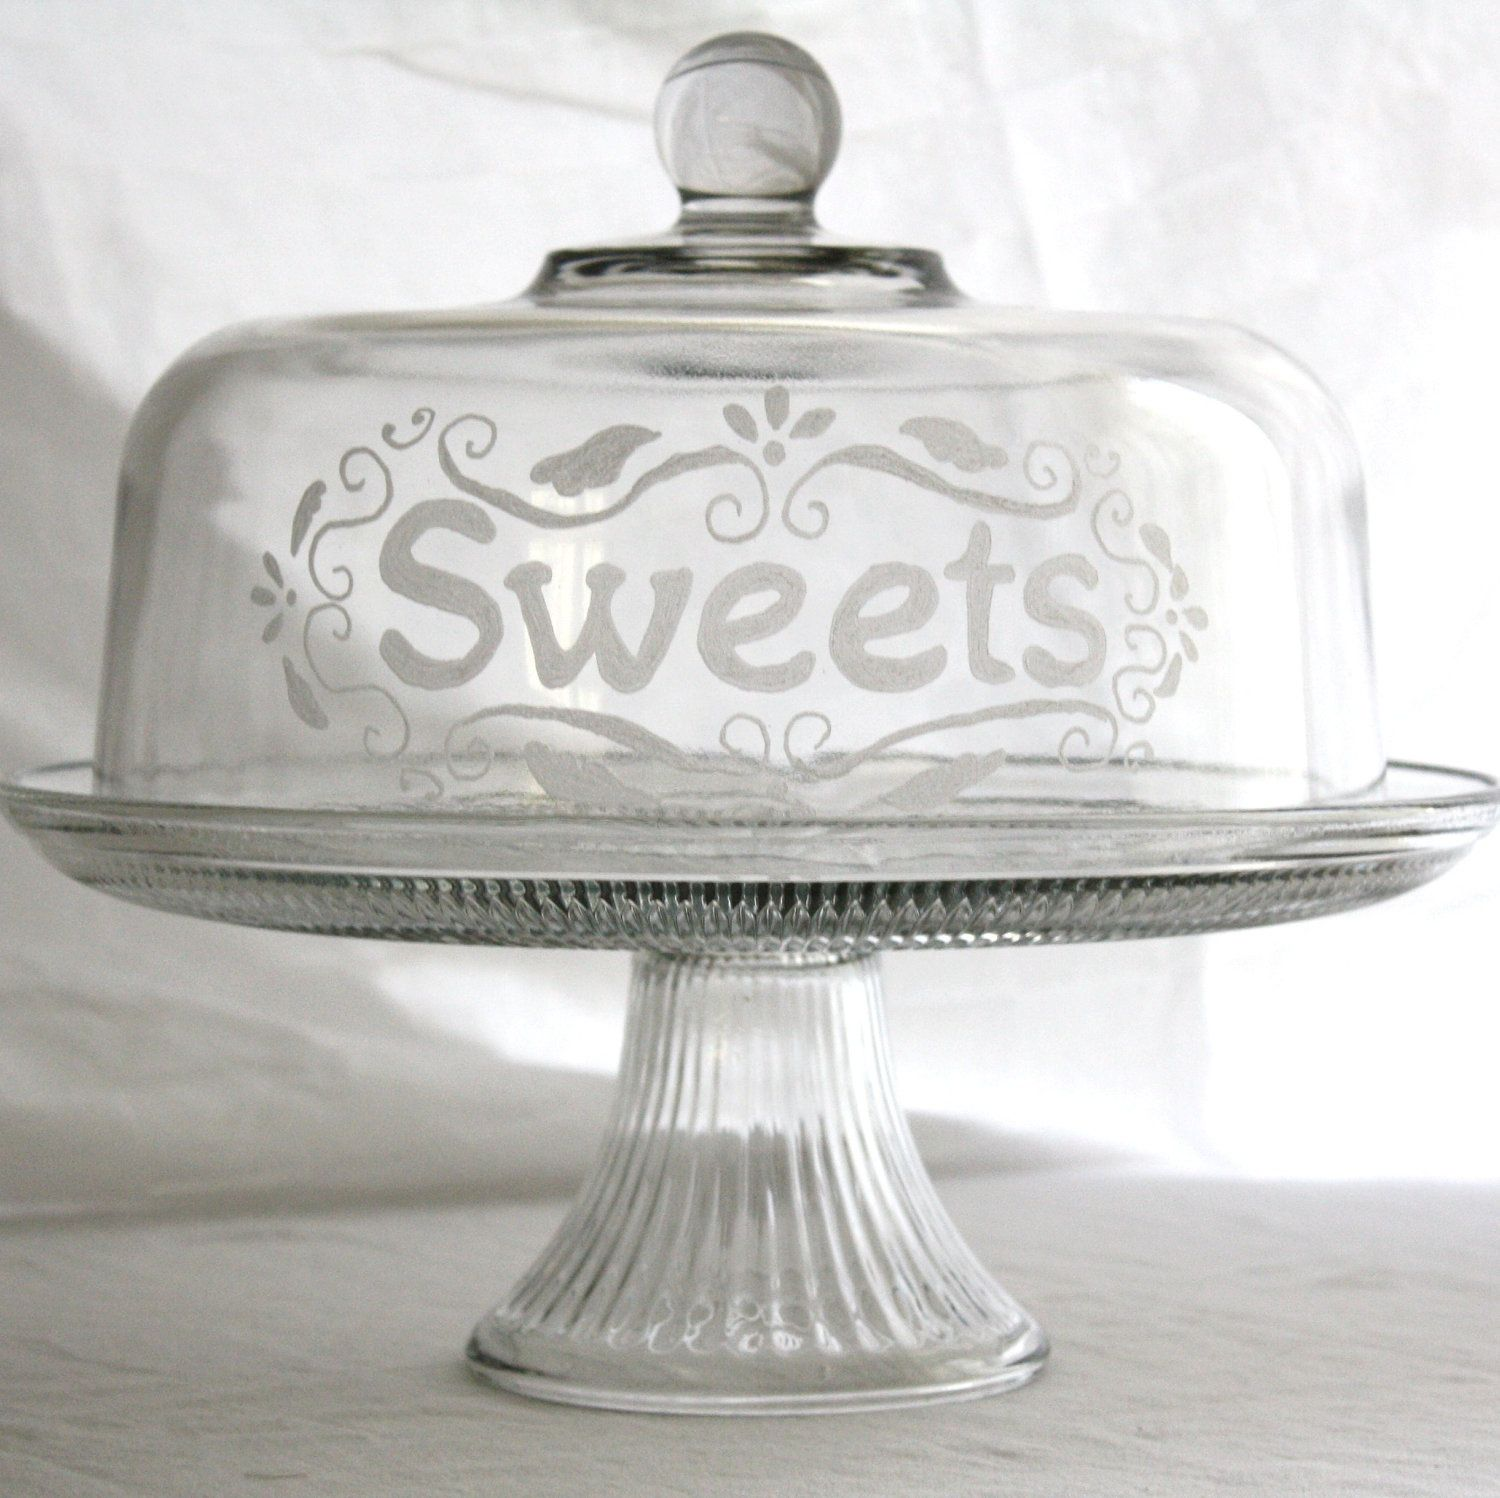 Etched Glass Cake Stand Sweets (Domed Cake Plate With Cloche)